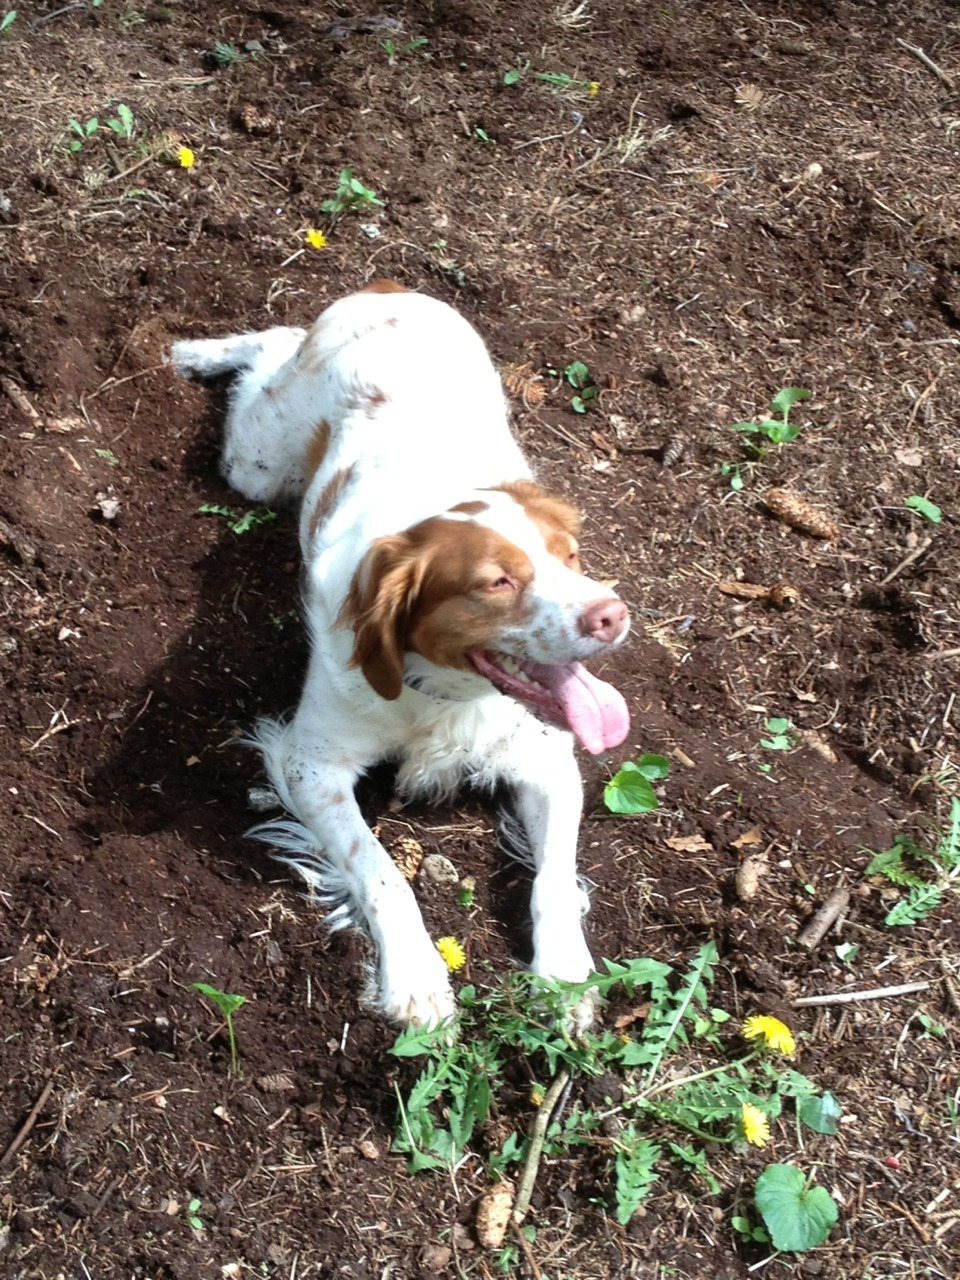 aprylynn:  He's happiest when he's outside, lying in dirt!